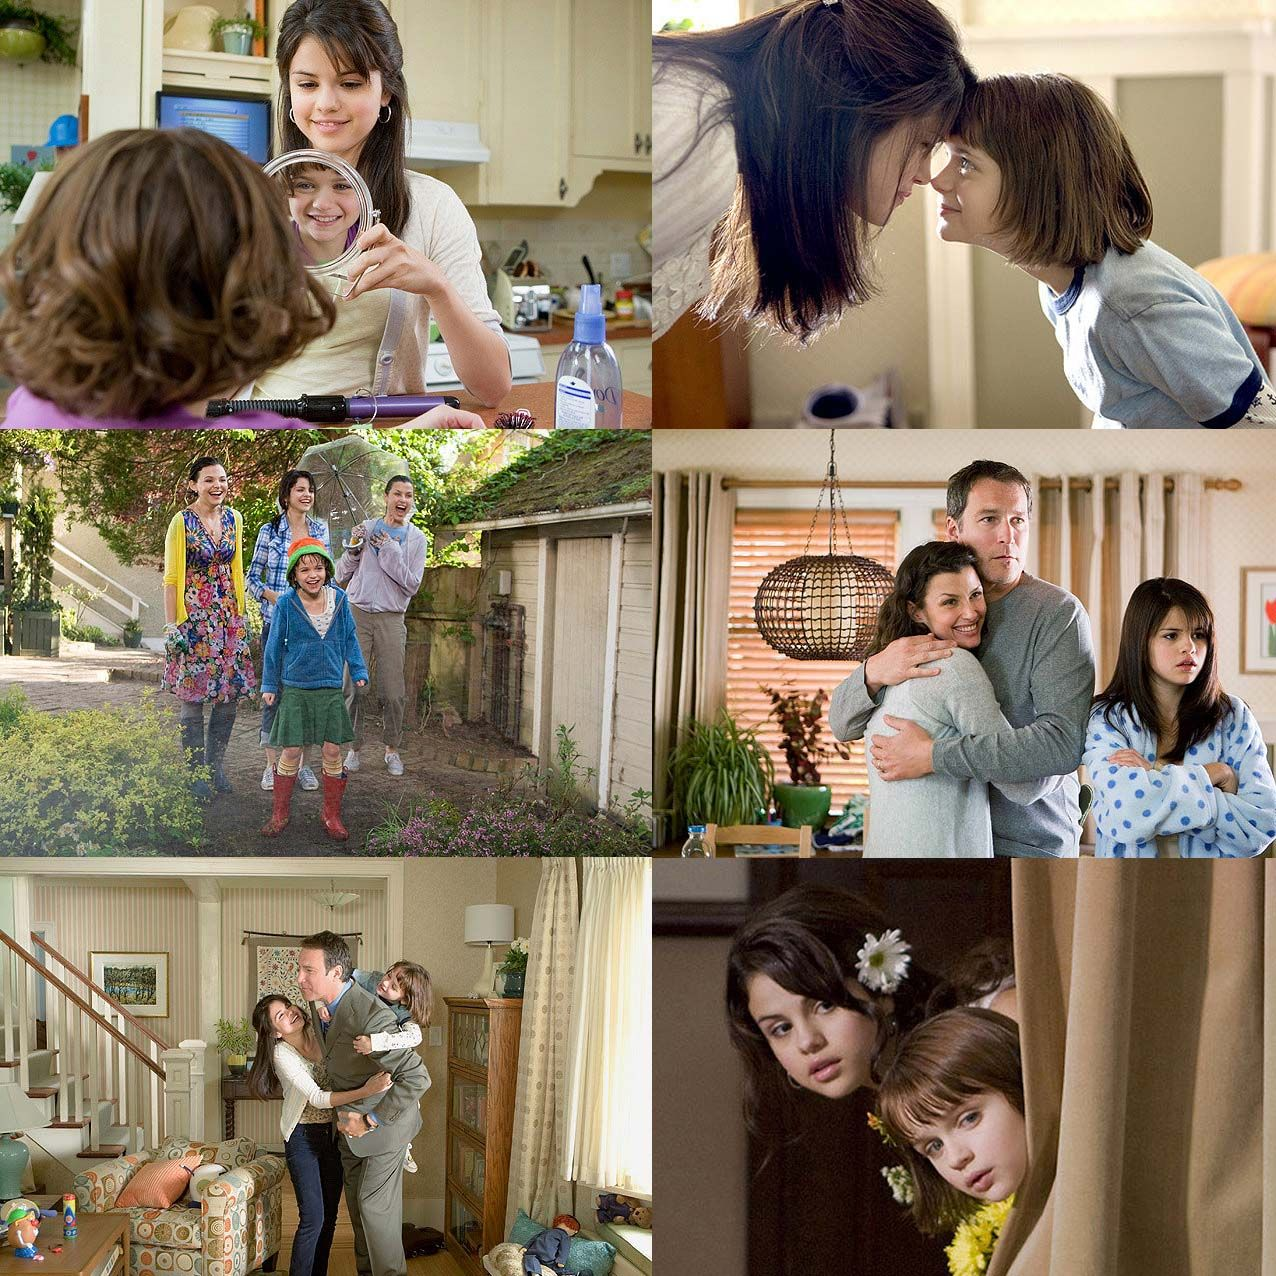 selena gomez ramona and beezus movie photos | Selena Gomez e Joey King in  Ramona and Beezus | selena gomez ramona and beezus movie 010 | Pinterest |  Joey ...